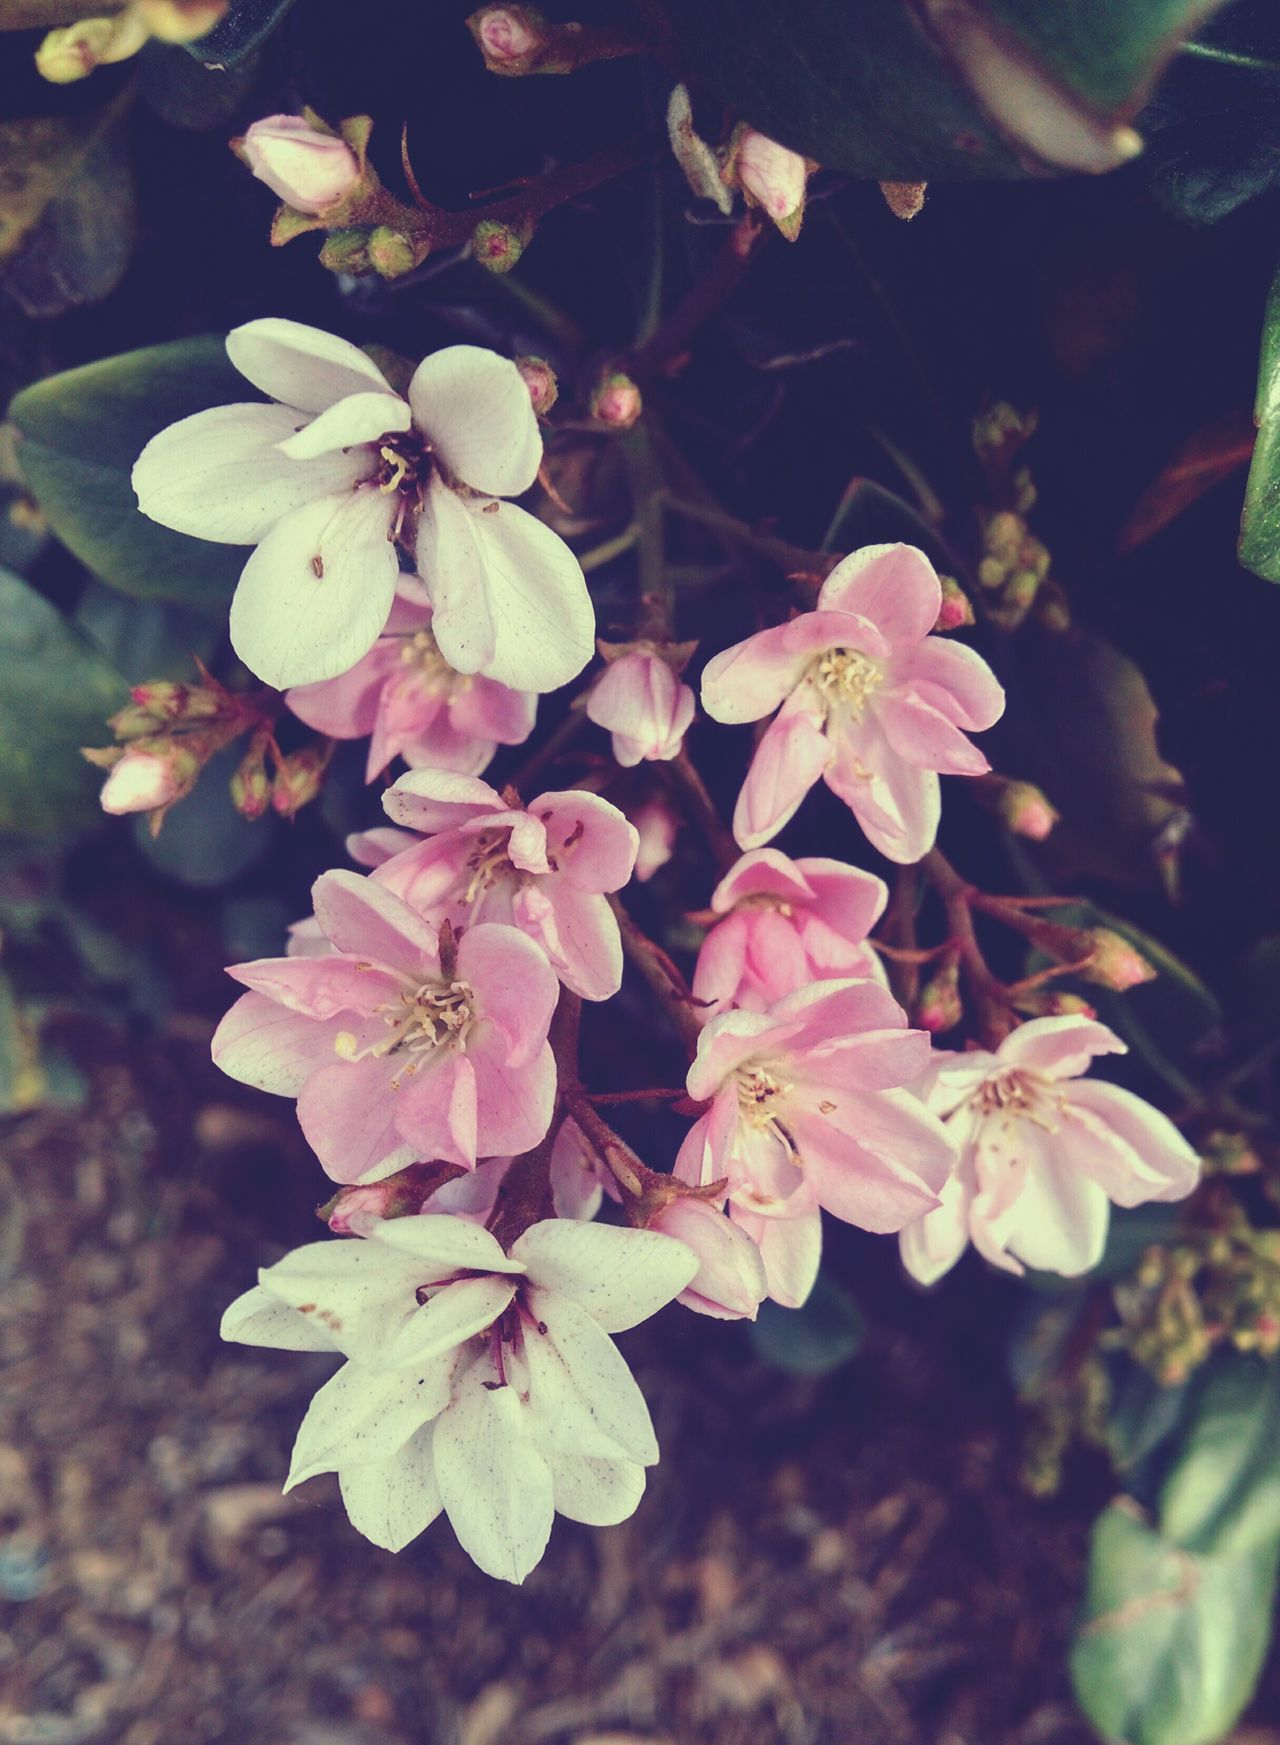 Came across these while sitting in my car. Flowers Nature EyeEm Nature Lover Eye Em Best Shots - Flowers South1:) On The Road Landscape_photography Pretty In Pink Scenary Smile ✌